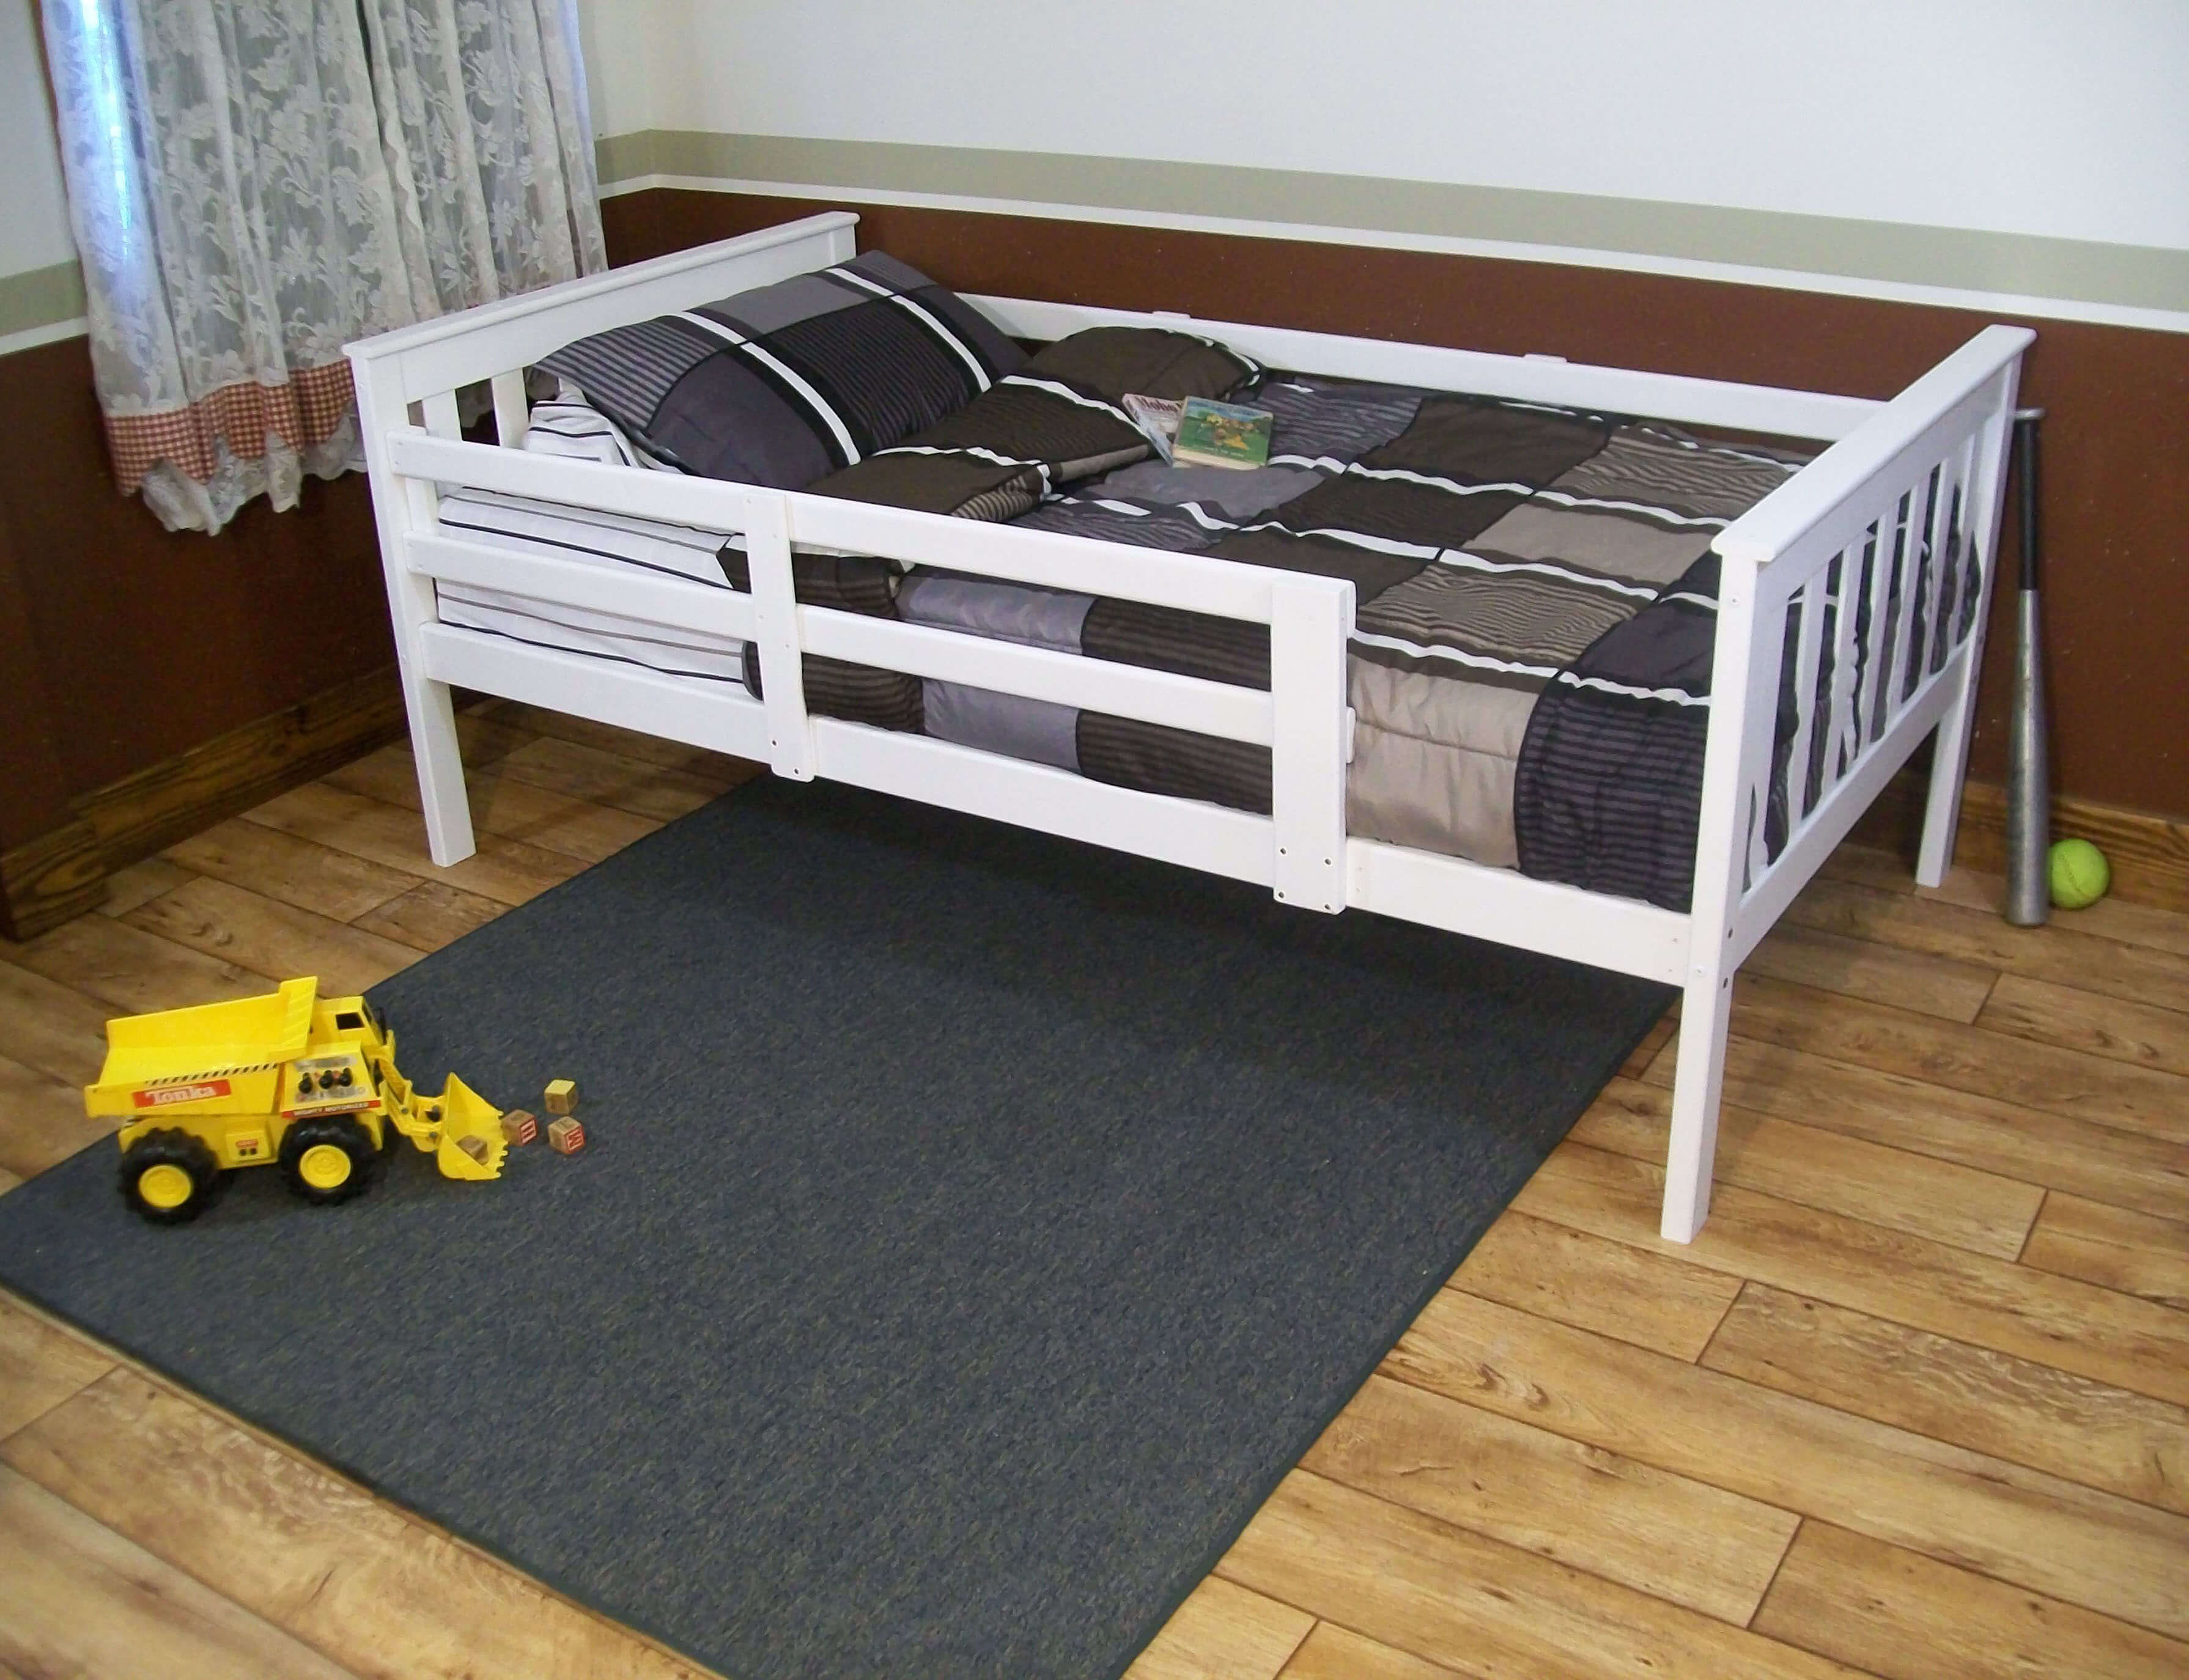 platform bed with guard rail versa style  twin or full size  - platform bed with guard rail